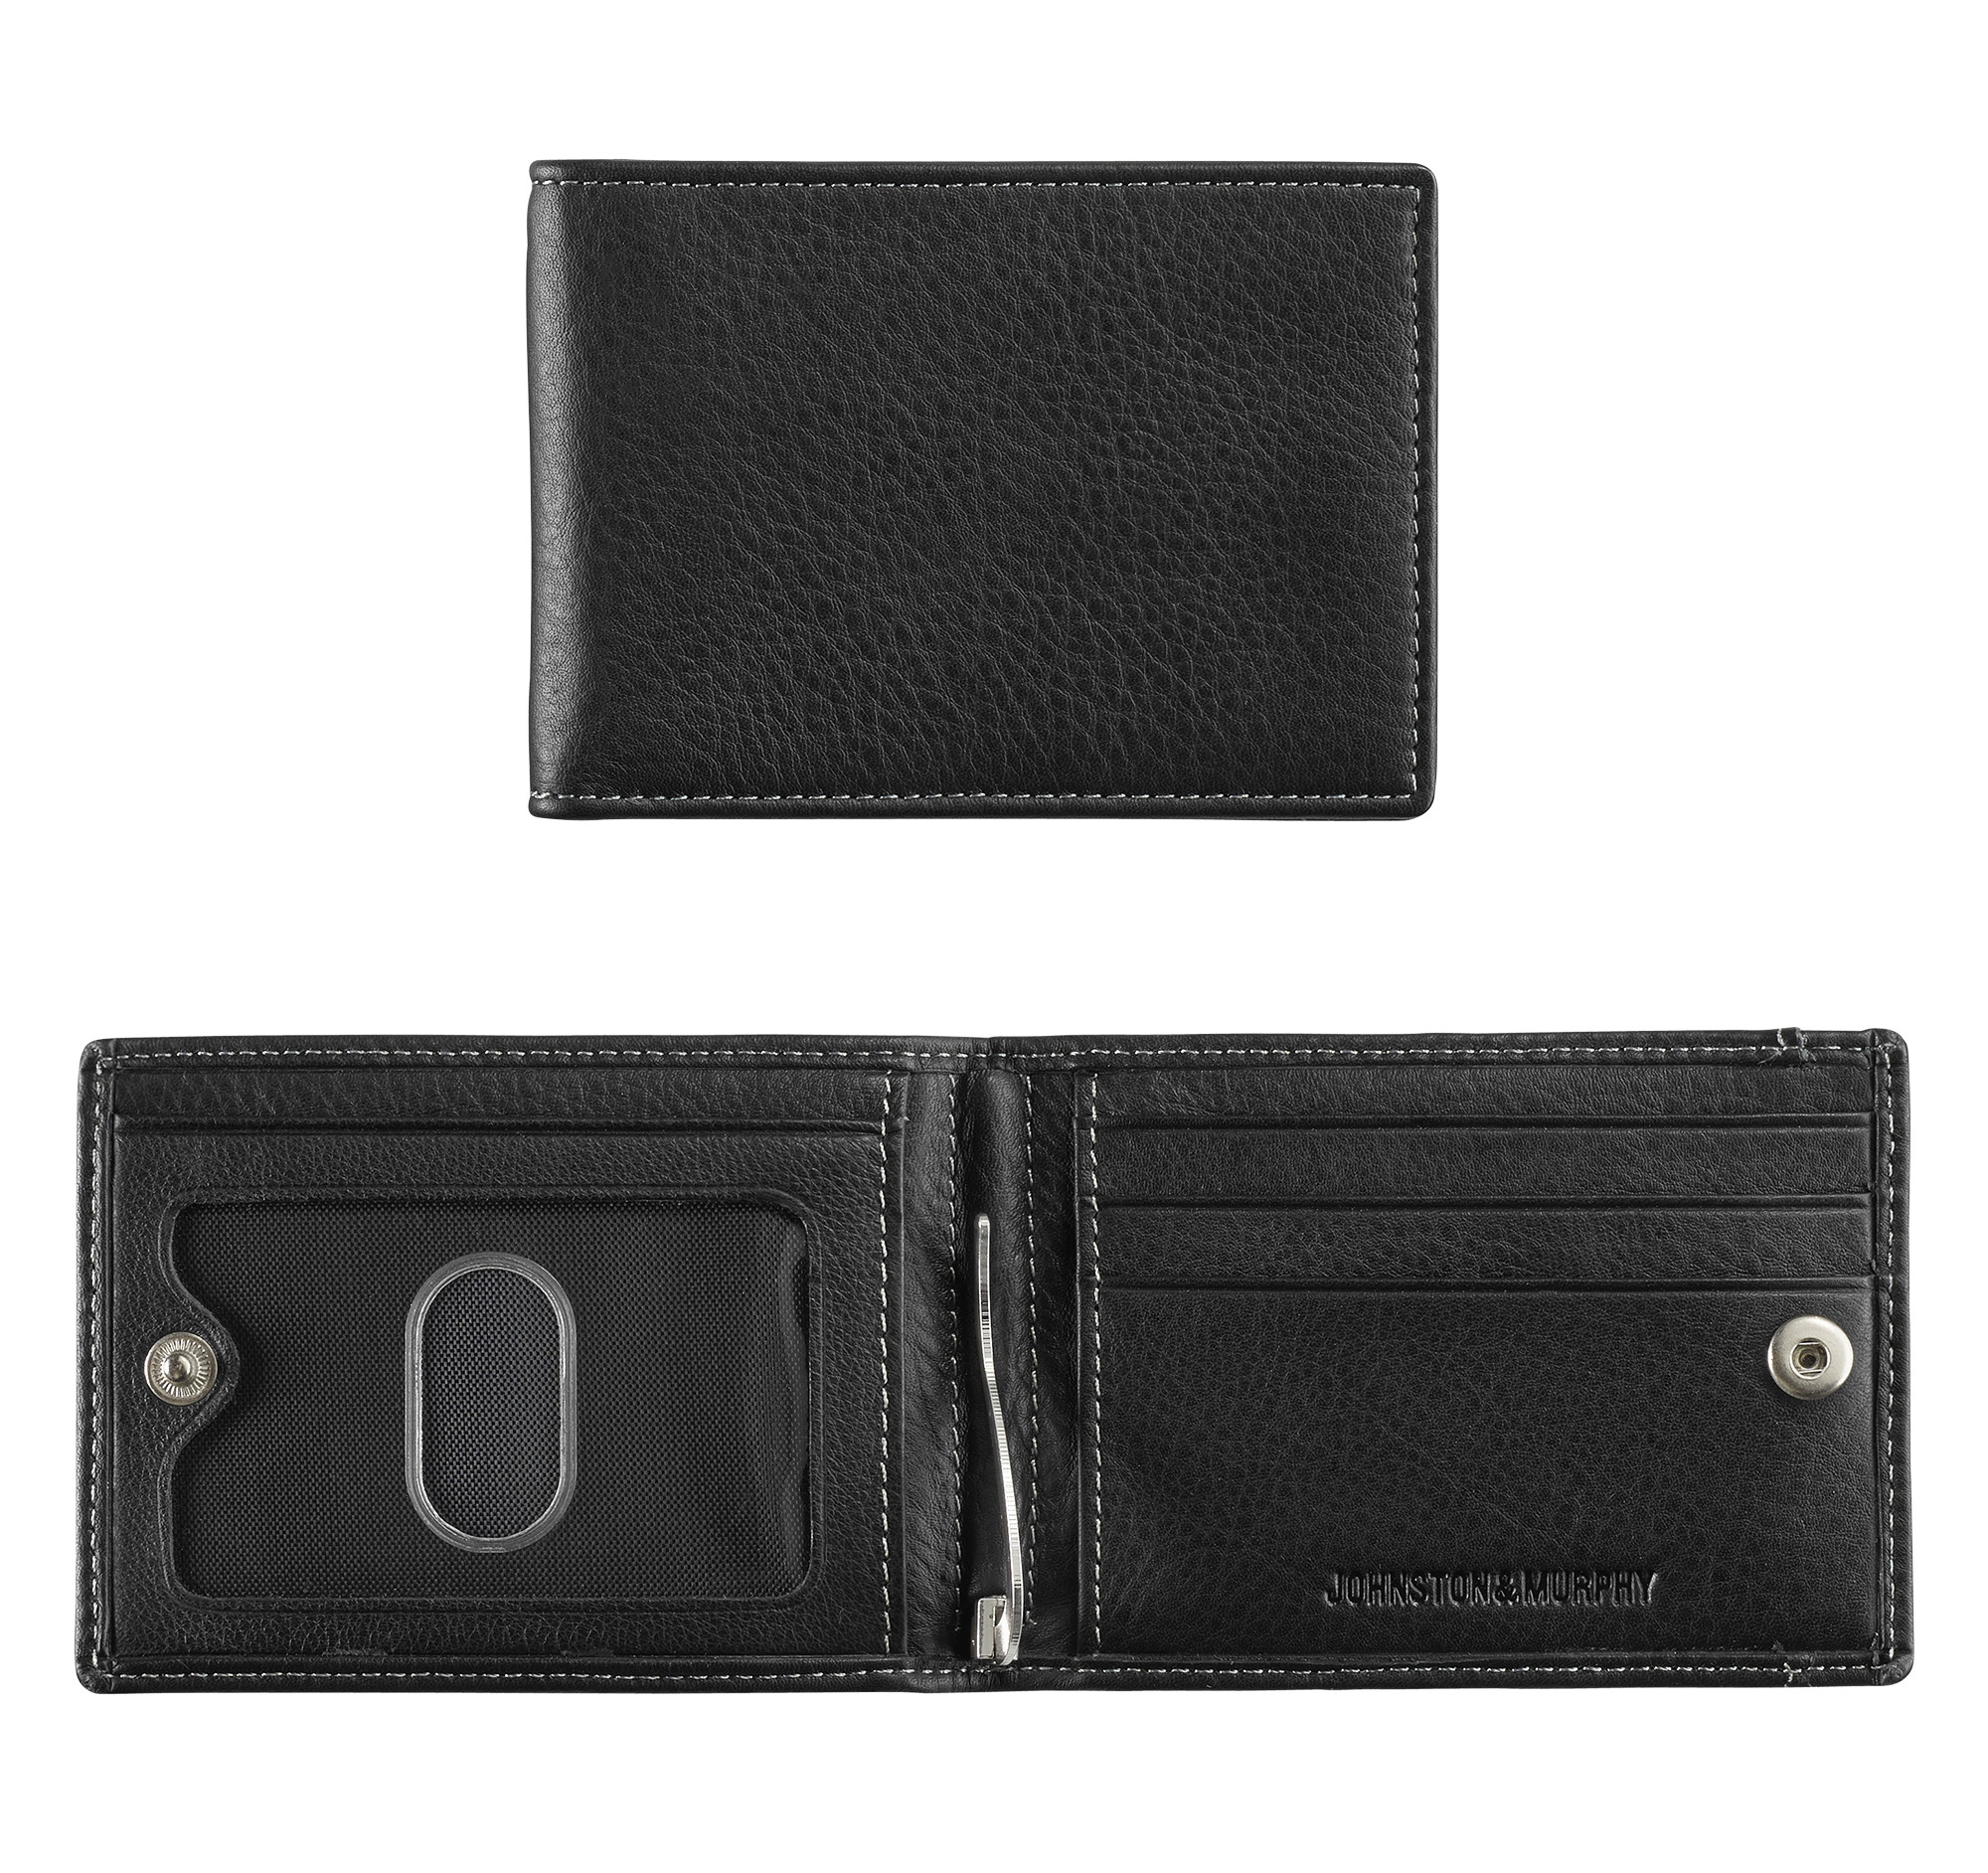 Johnston & Murphy Snap Bill Till Wallet